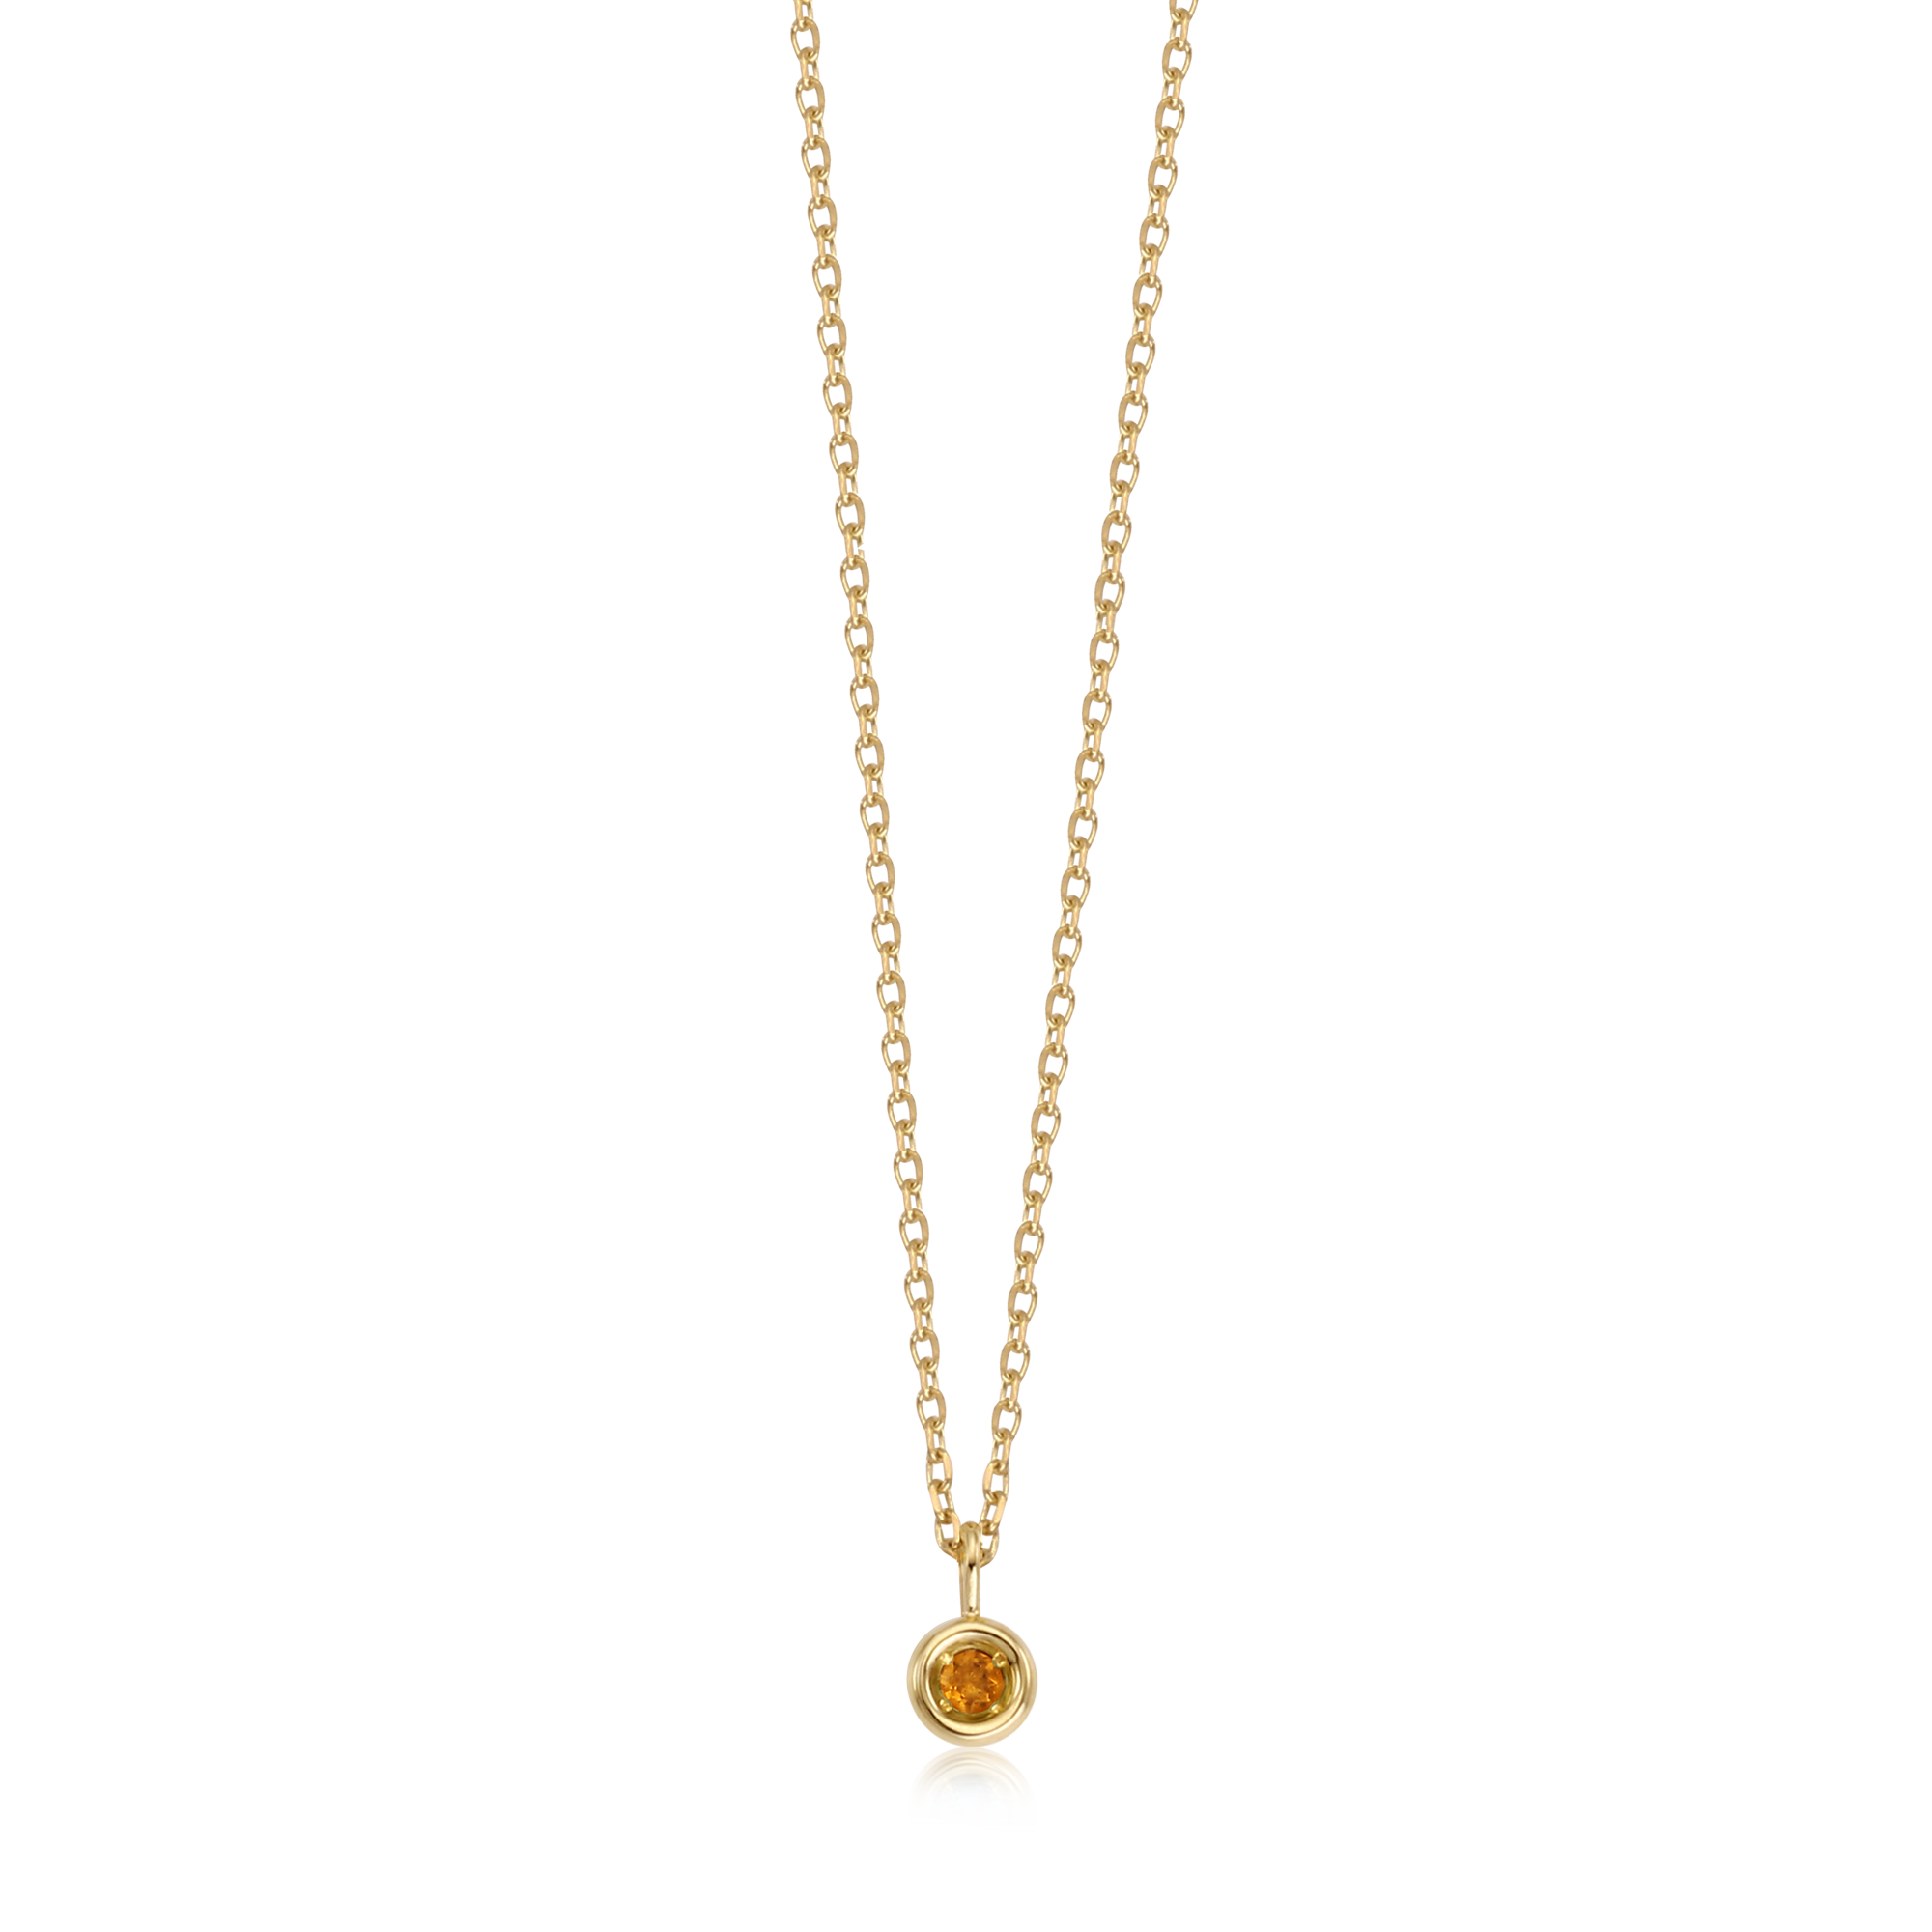 14K gold Citrine November birthstone necklace